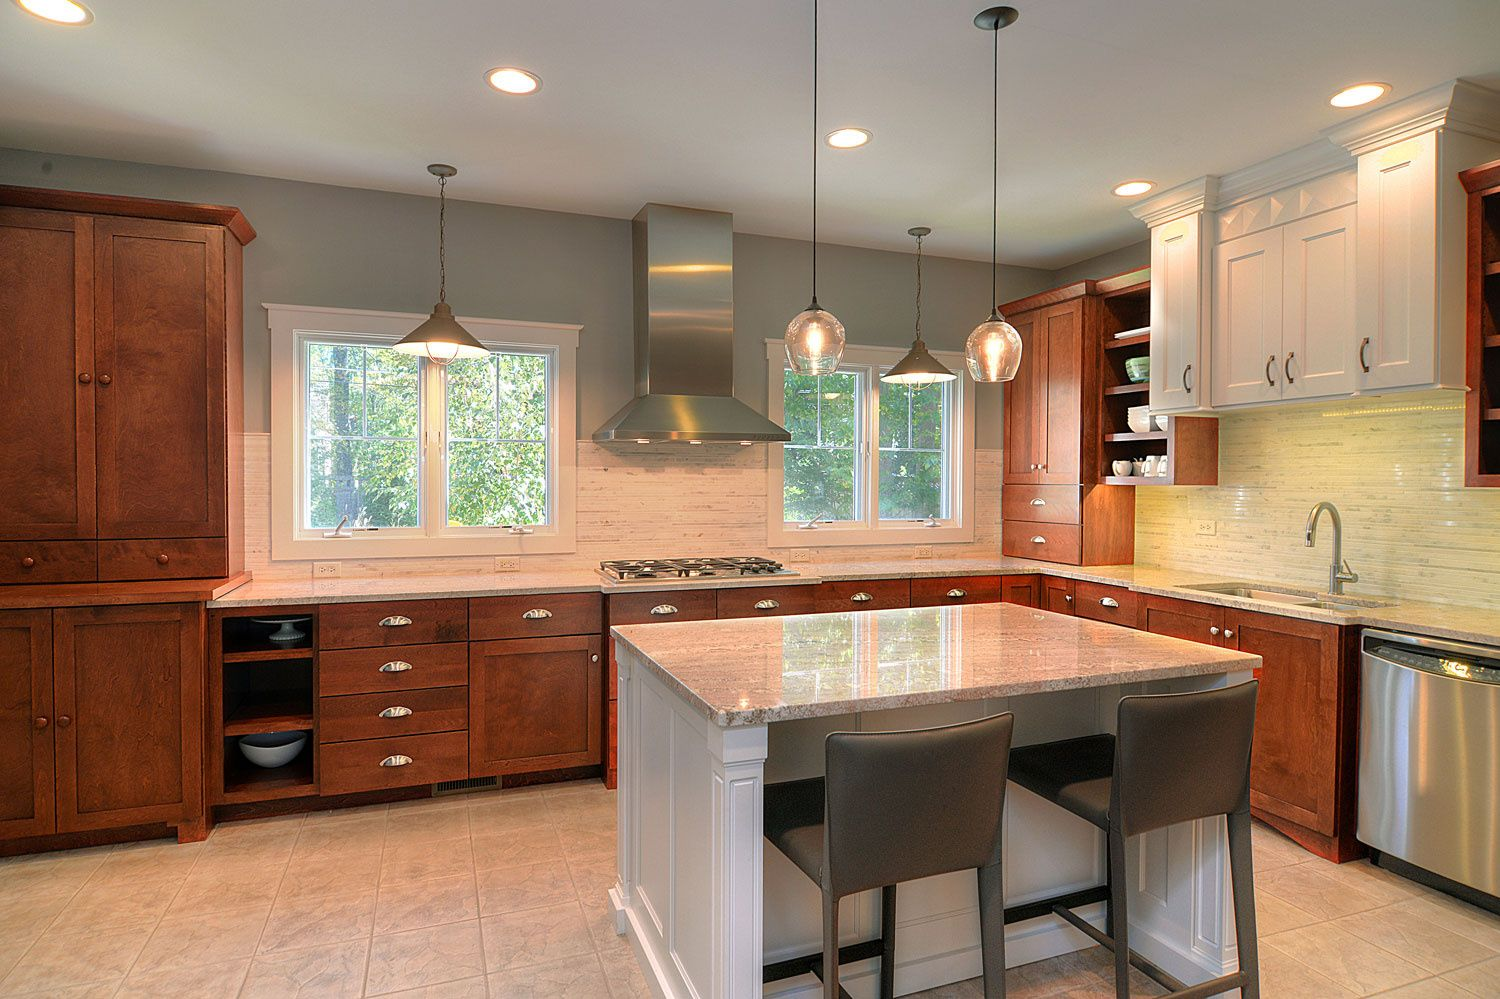 2019 Quartz Countertops Naperville Il   Kitchen Decor Theme Ideas Check  More At Http:/